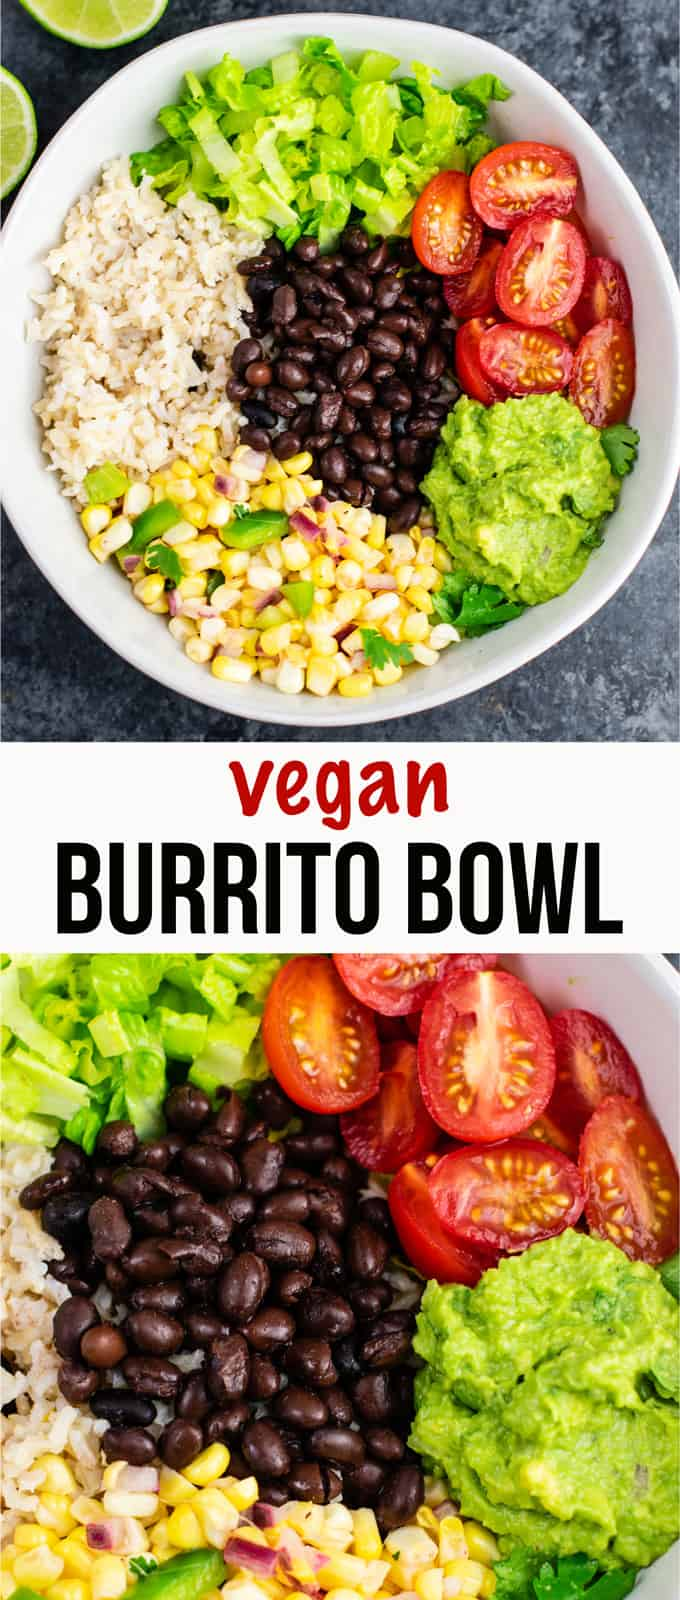 Vegan burrito bowl recipe with homemade fresh corn salsa and guacamole. Better than chipotle and so fresh and delicious! #vegan #burritobowl #meatless #chipotle #mexican #dinner #vegetarian #mealprep #dairyfree #guacamole #cornsalsa